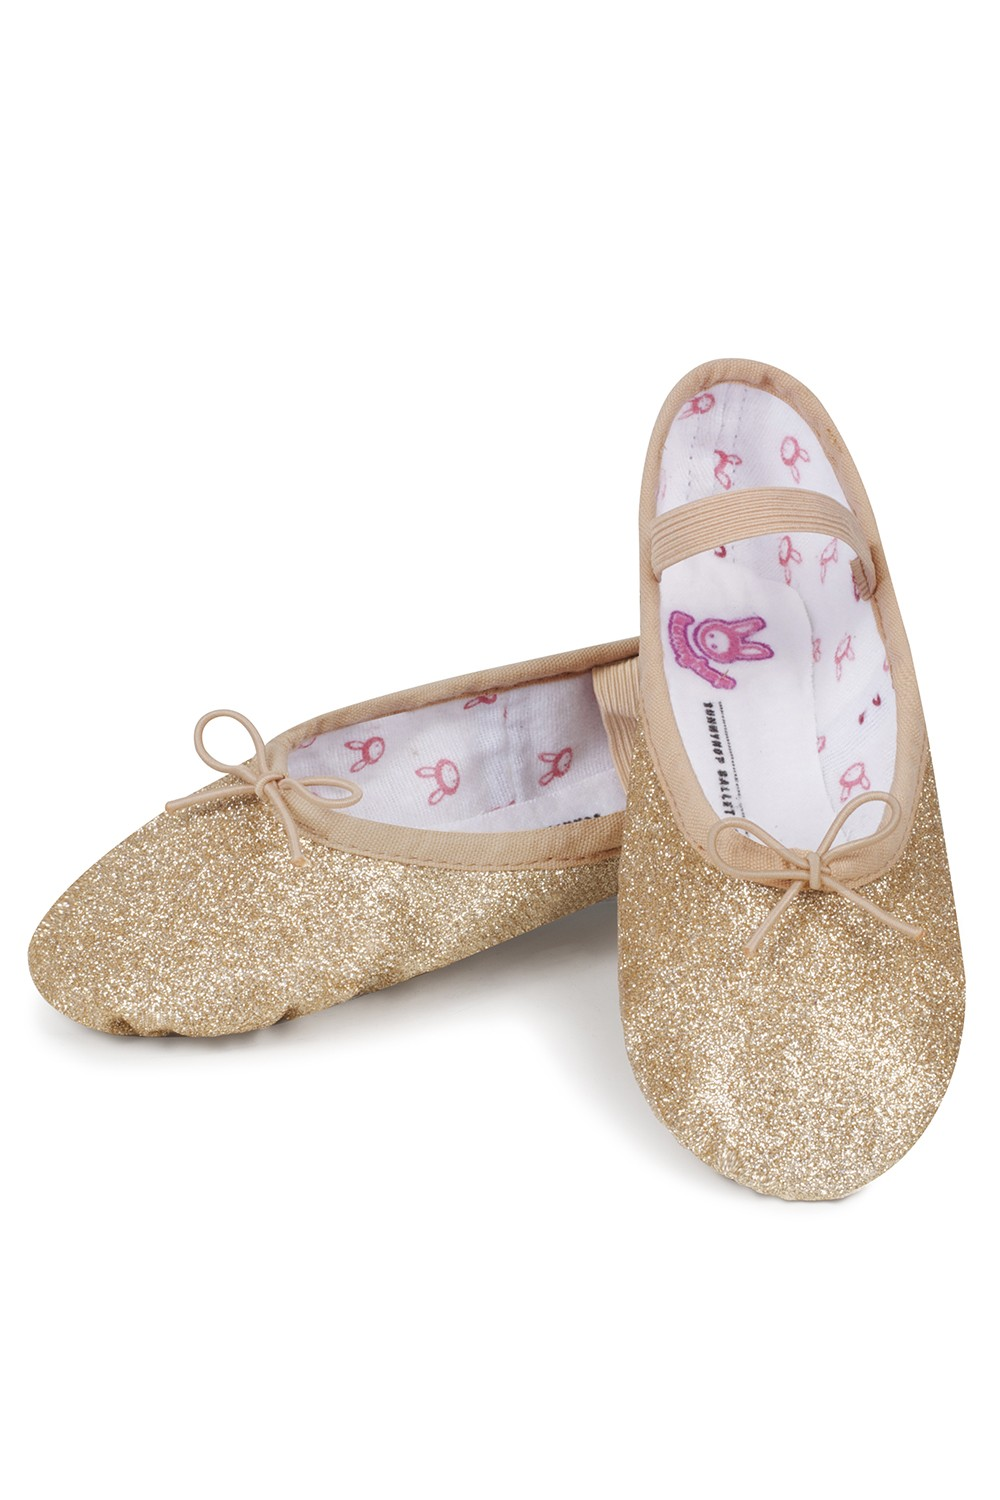 Glitterdust - Bambina Girl's Ballet Shoes